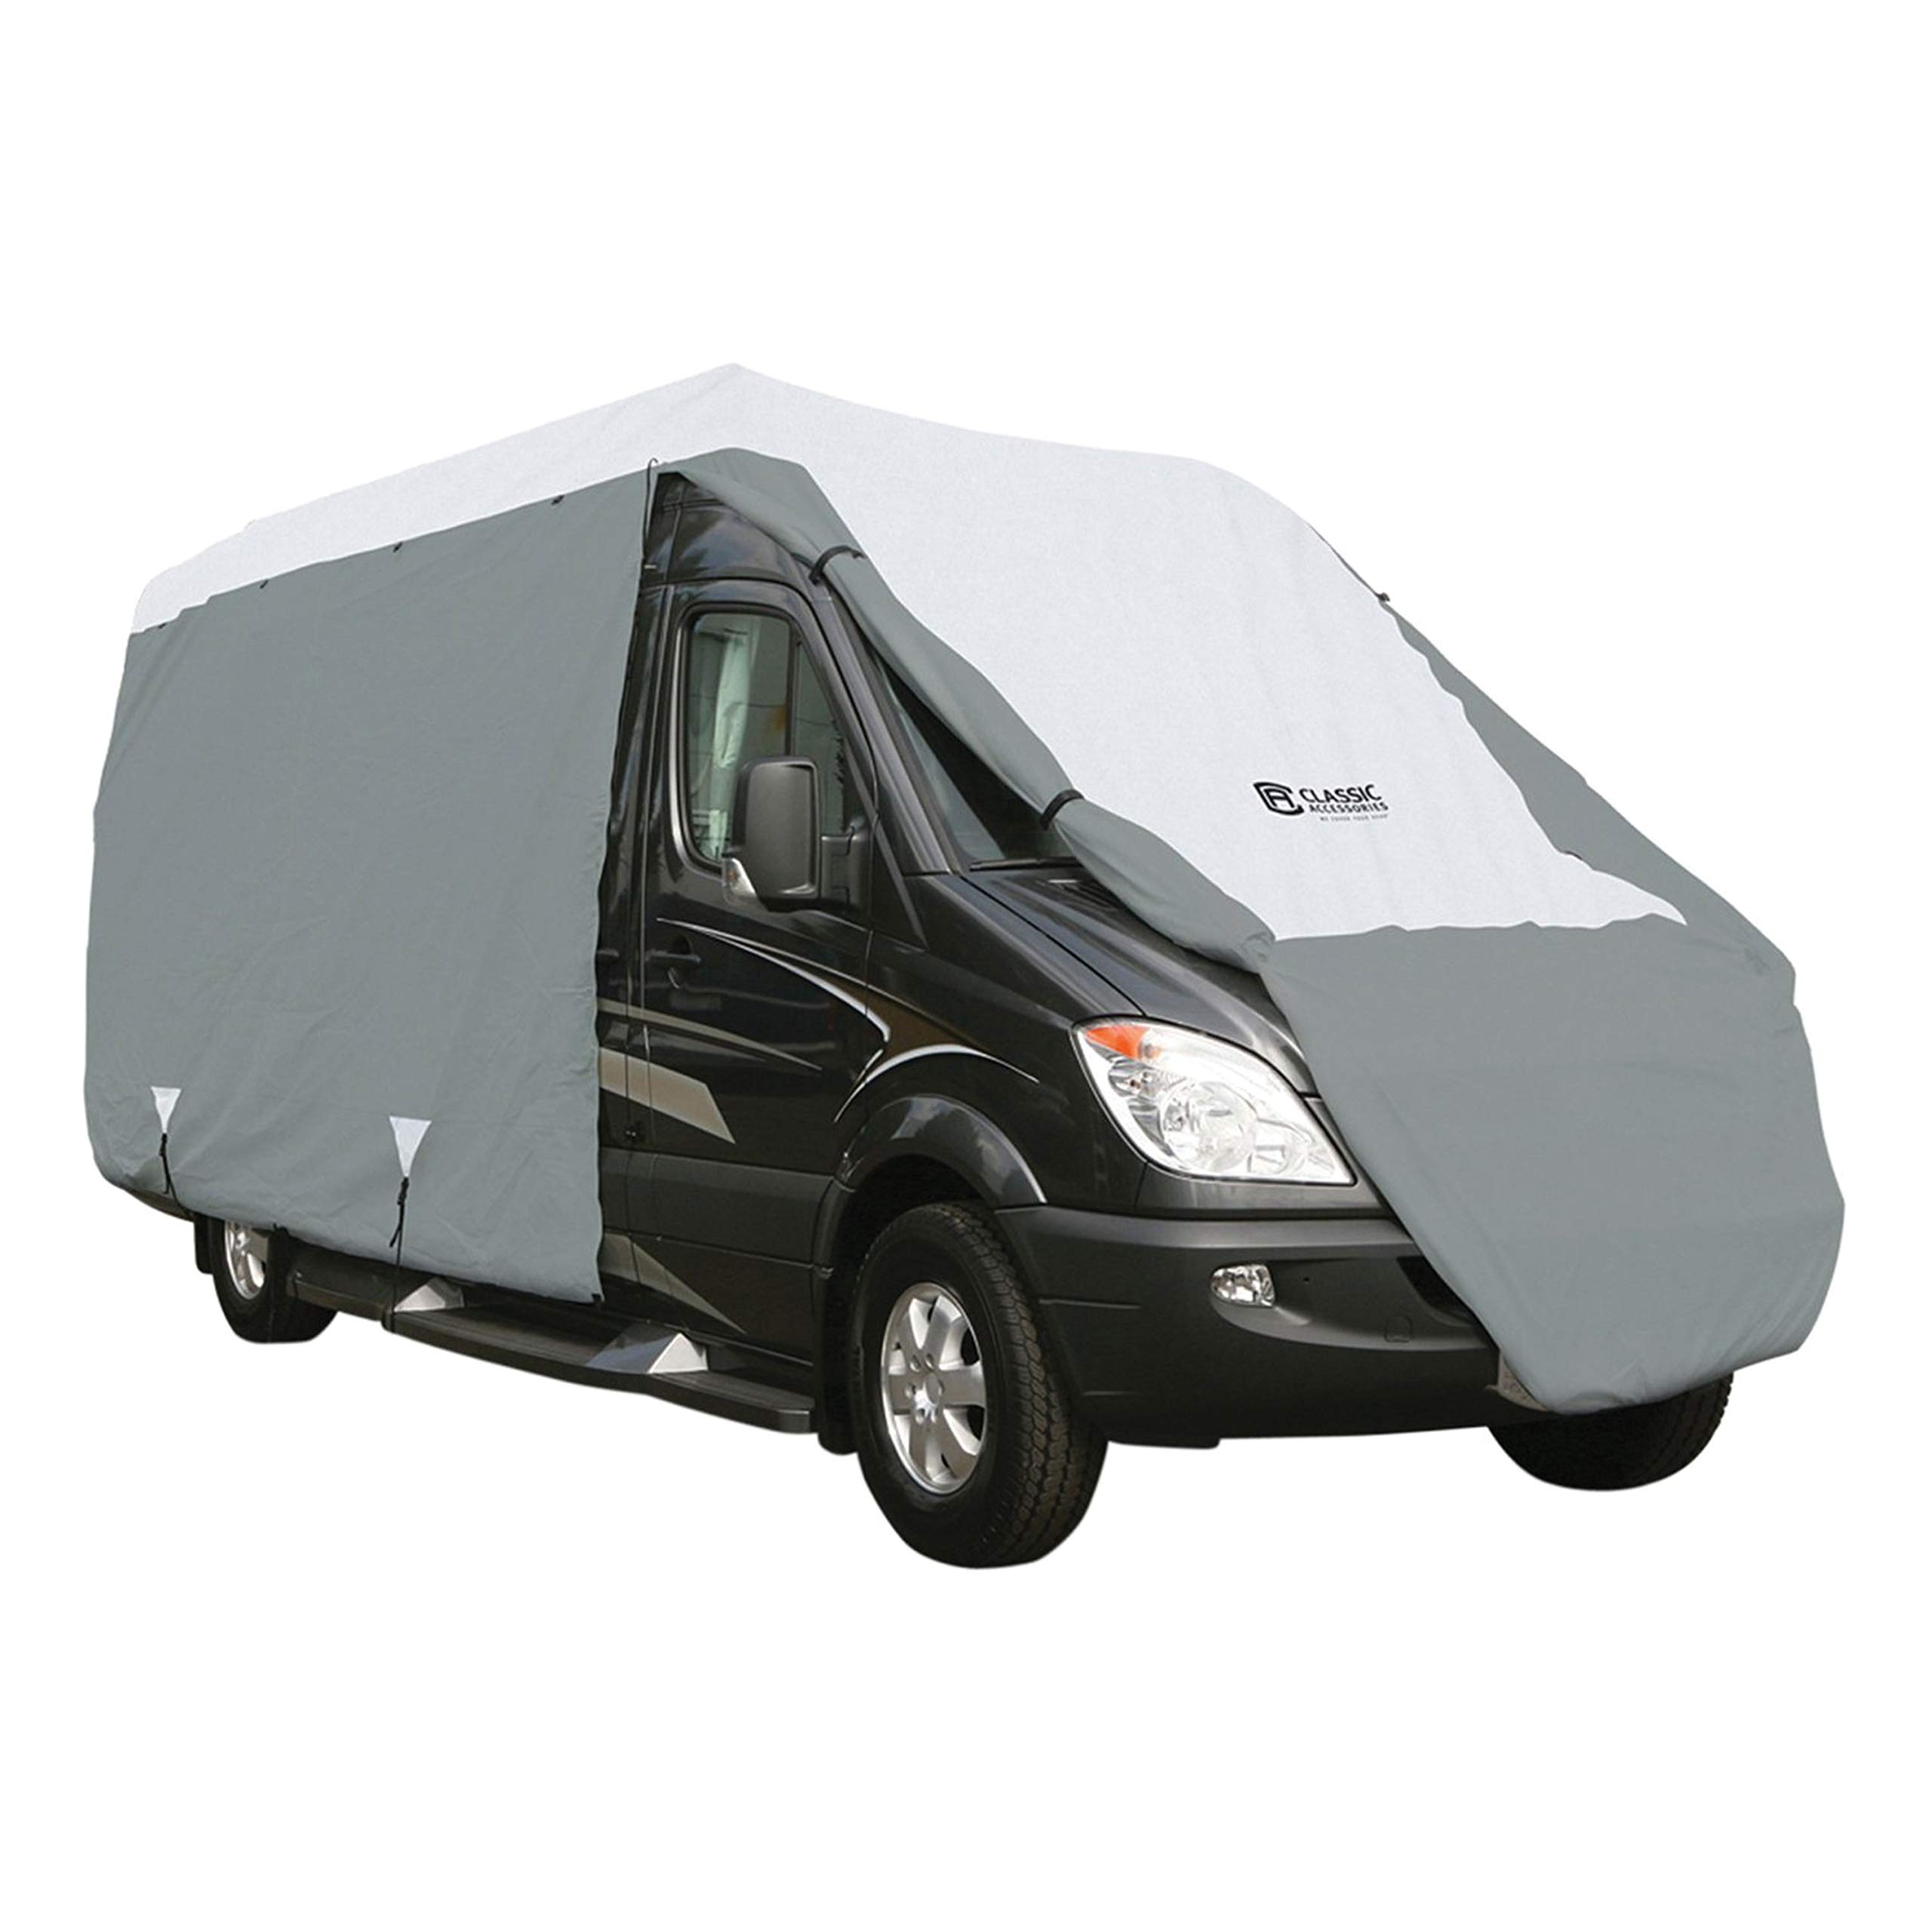 Classic Accessories OverDrive PolyPro 3 Deluxe Class B RV Cover, Fits Up To 23' RVs by Classic Accessories (Image #1)